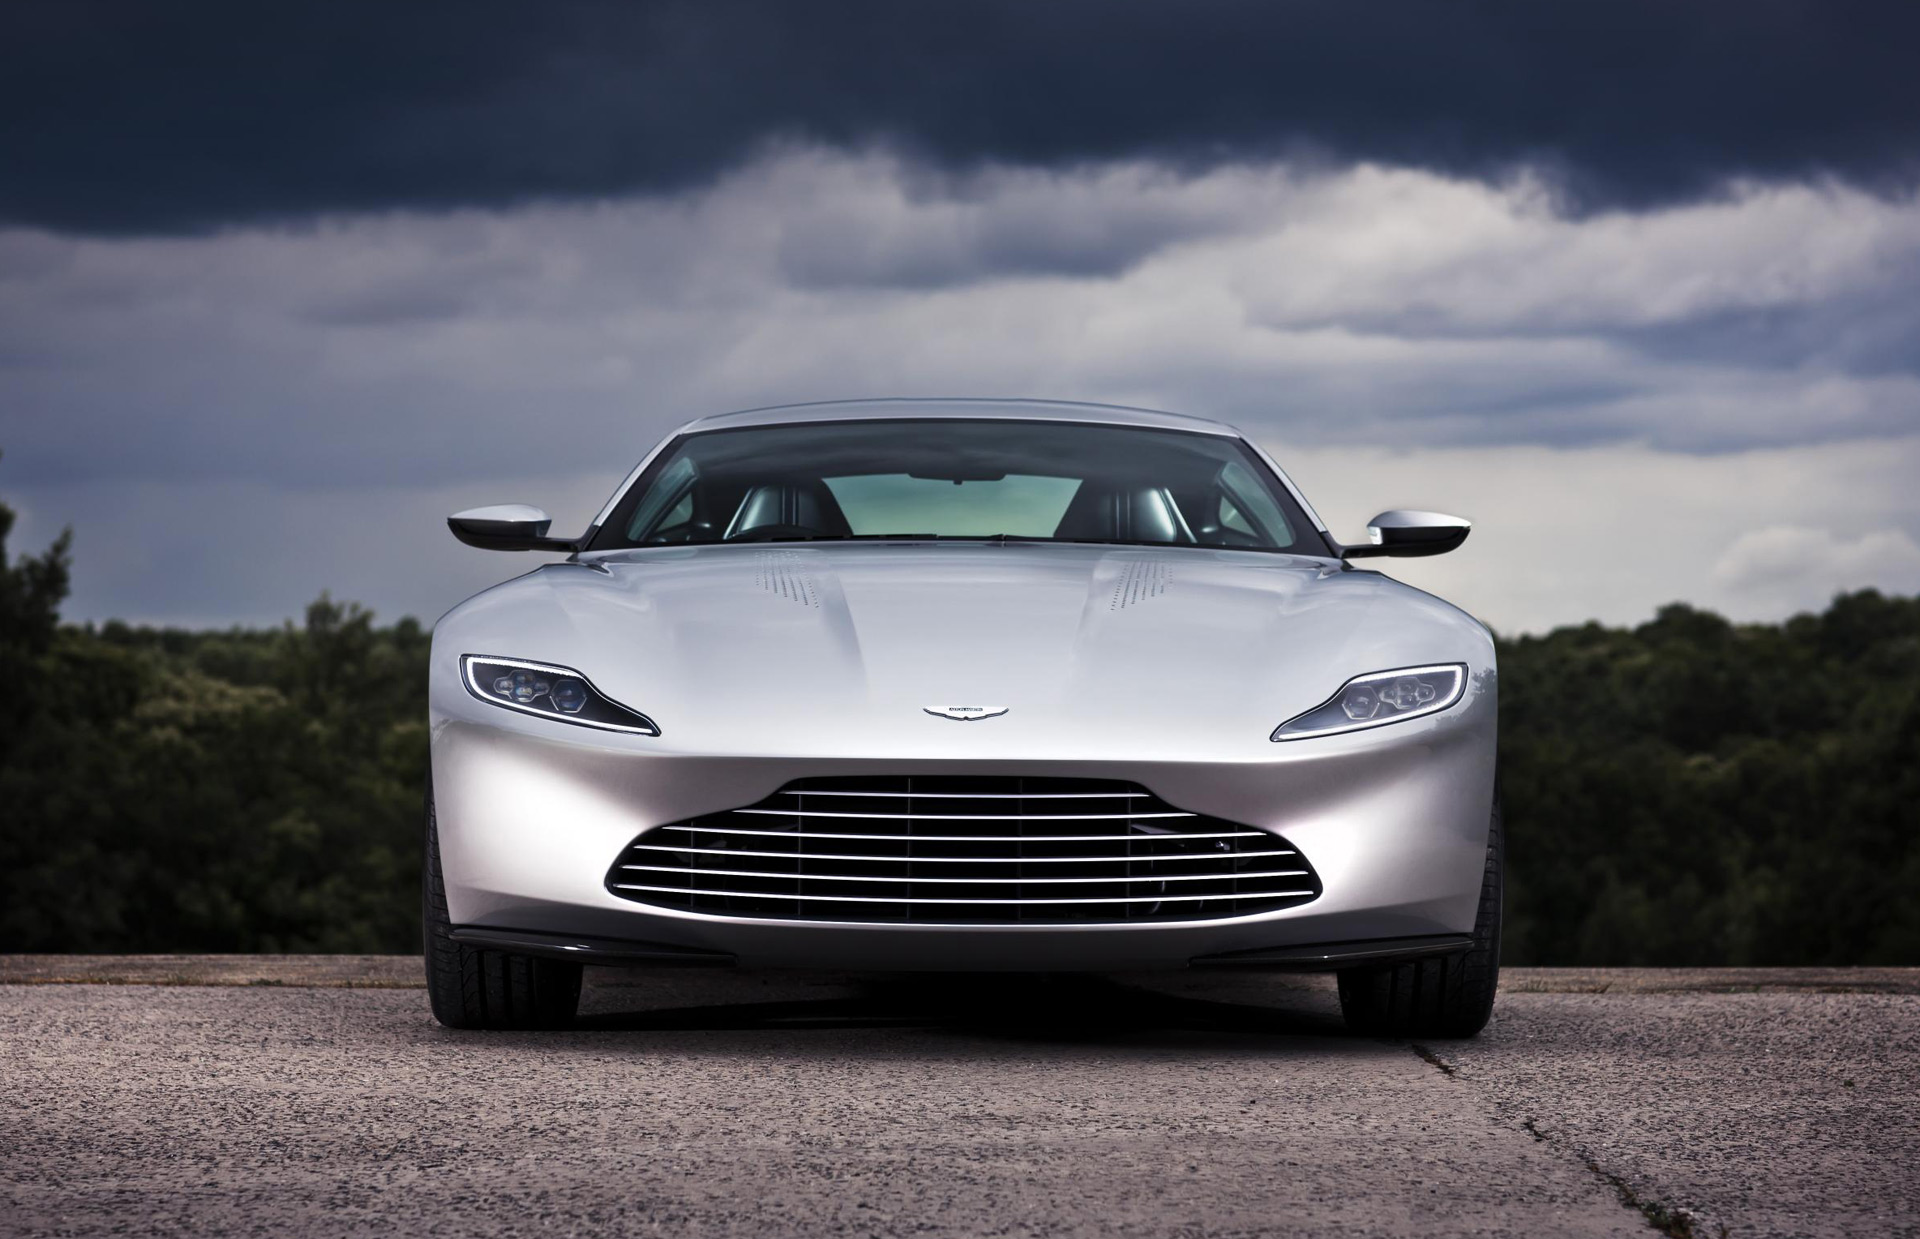 Aston Martin Provides Details On How To Buy The One Db10 Going Up For Sale